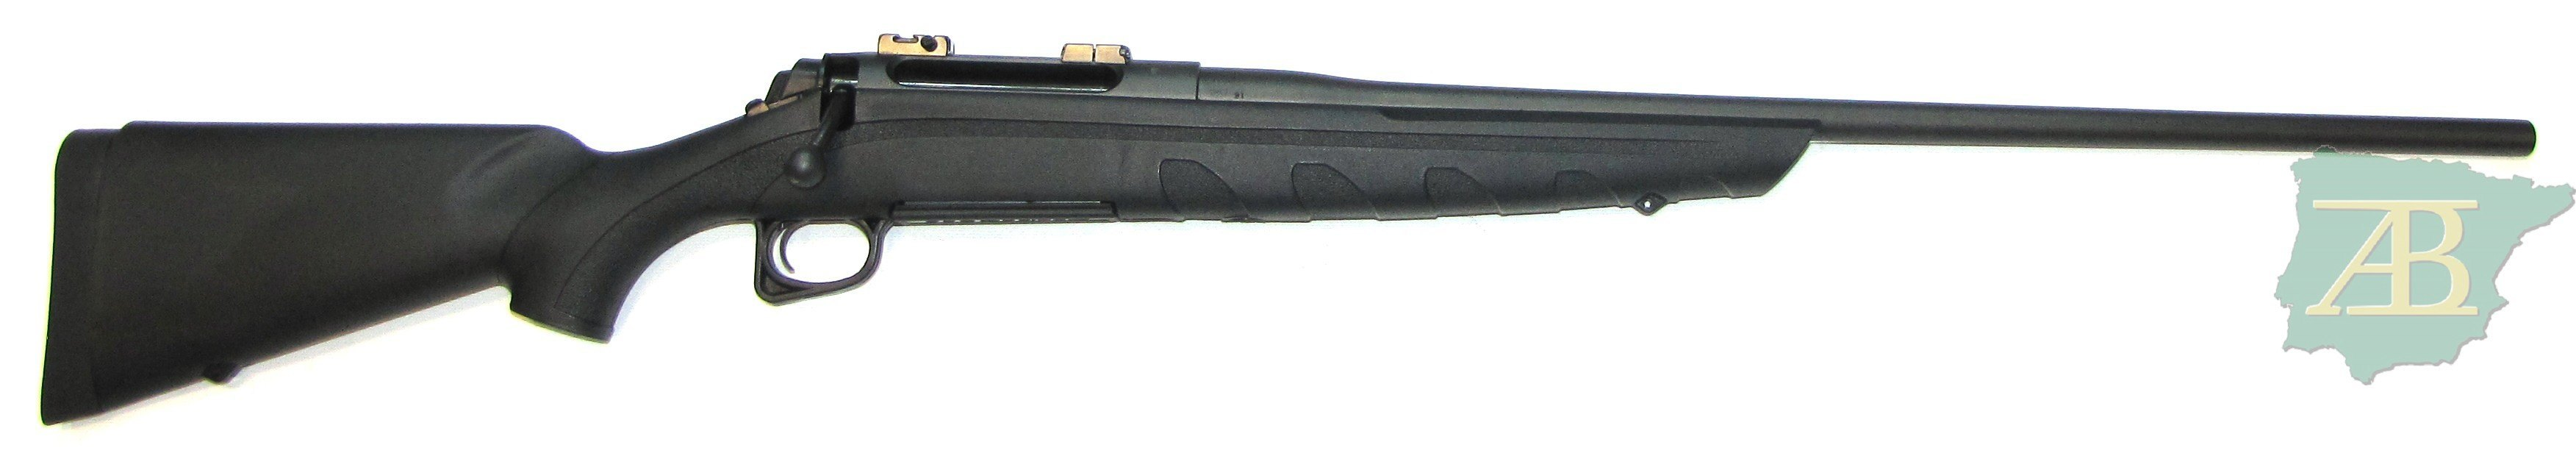 RIFLE DE CERROJO DE CAZA REMINGTON .300 WIN MAG Ref. 4844